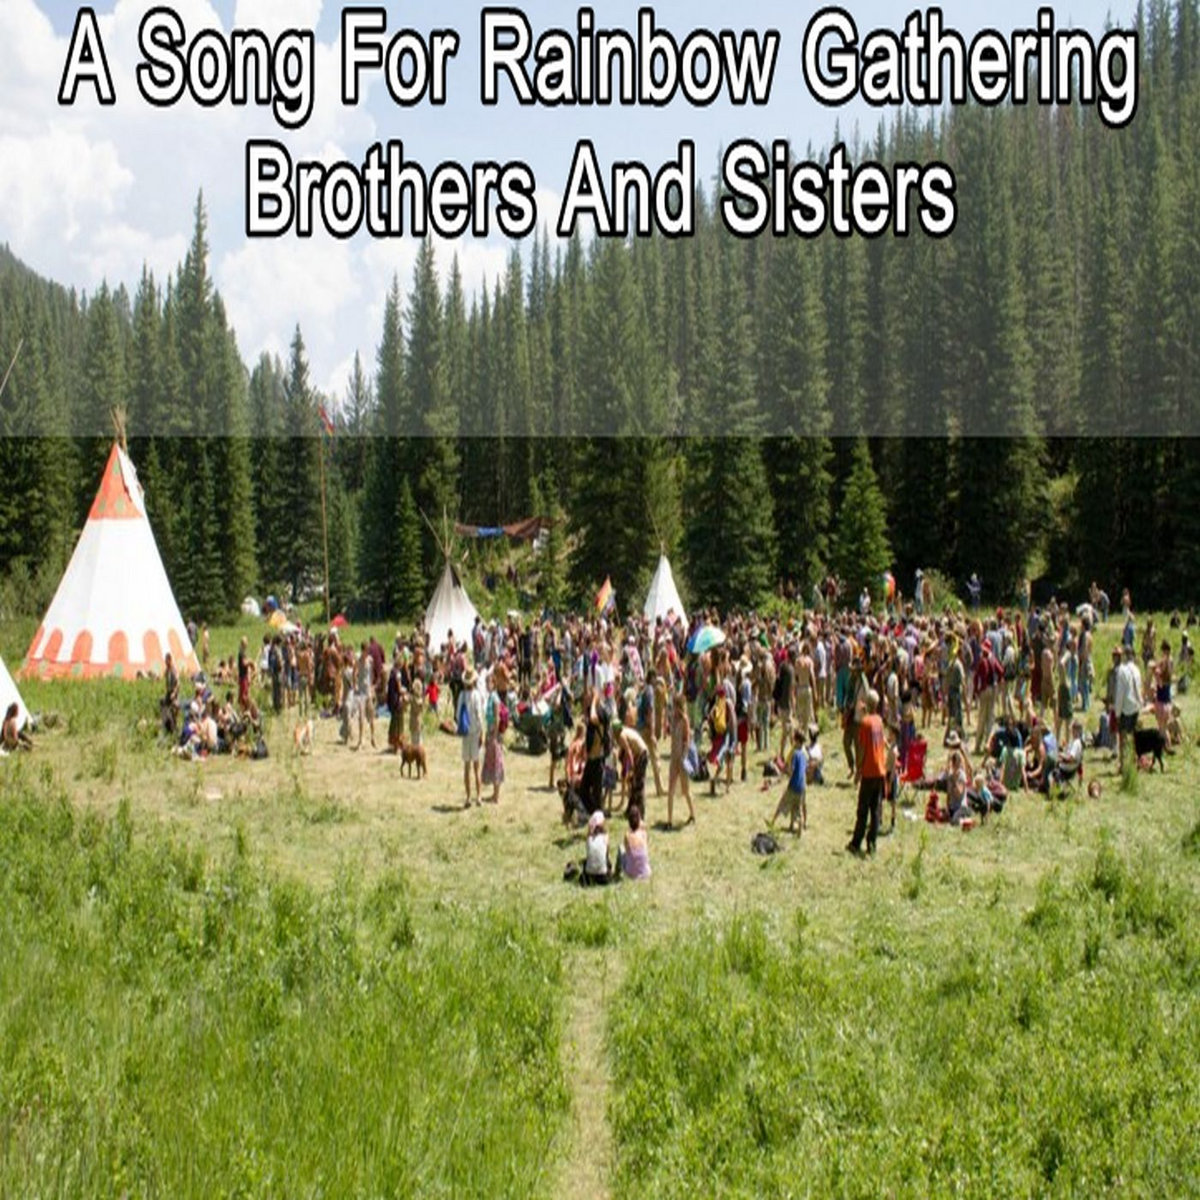 A Song For Rainbow Gathering Brothers And Sisters | Past Palu Songs